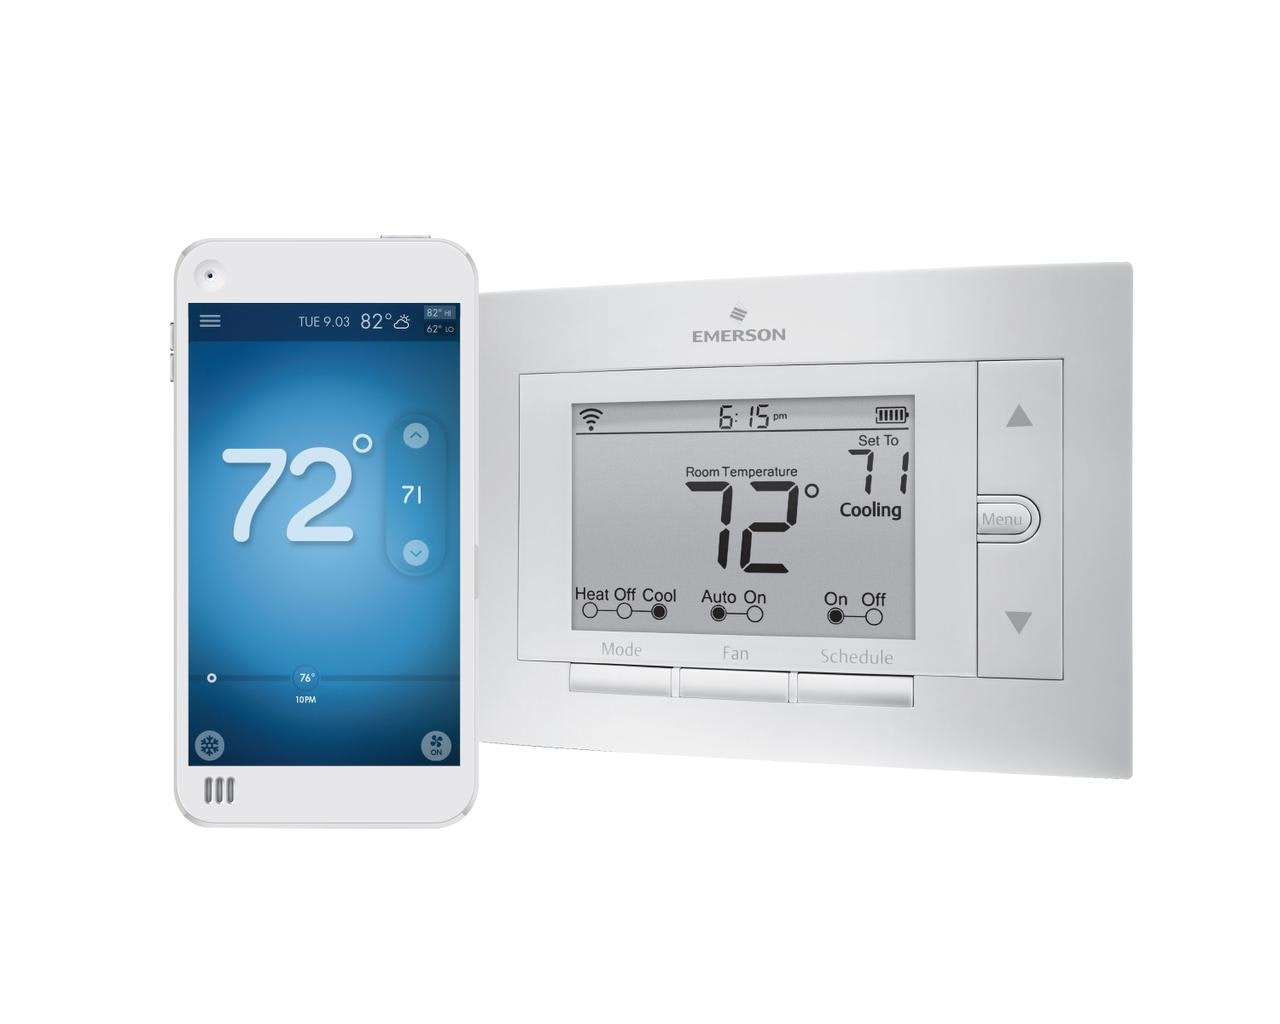 Emerson Sensi Thermostat Wiring Diagram Heat Only Detailed For Tech Review Wifi Gives You The Control Visionpro 8000